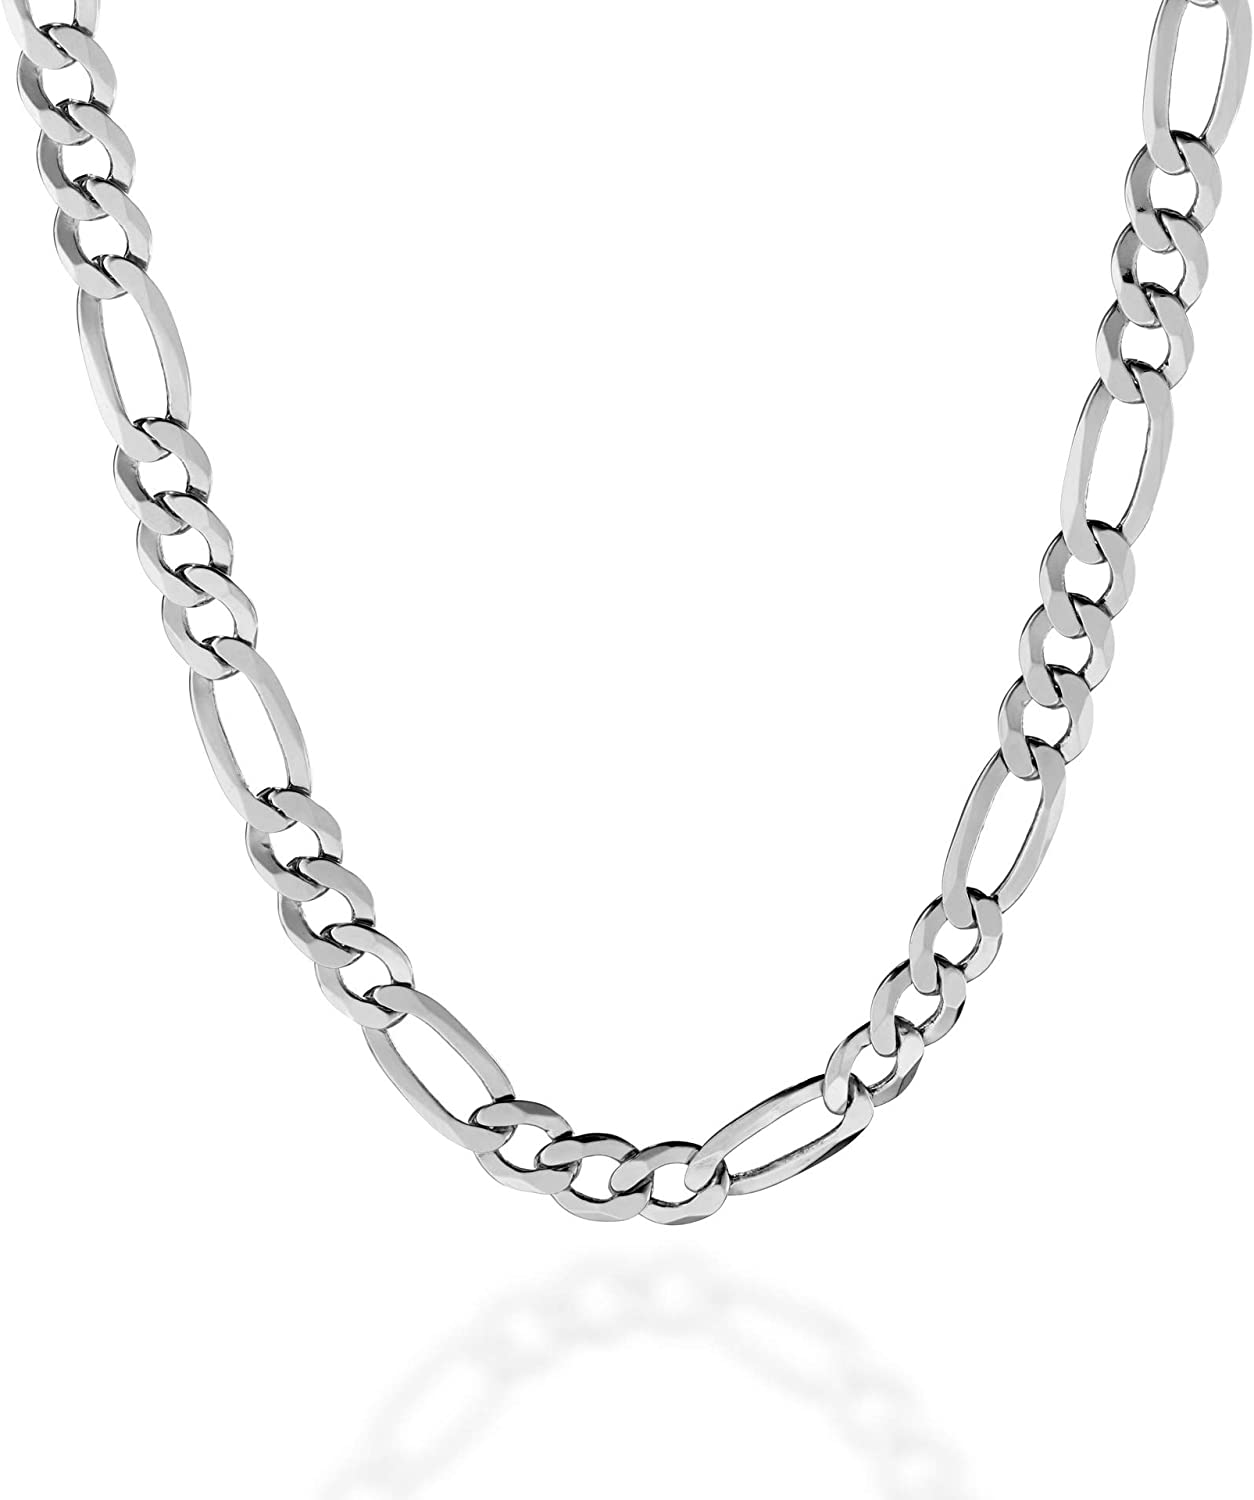 Quadri -925 Sterling Silver 7mm Figaro Link Chain Necklace 18-30 Inch Made in Italy